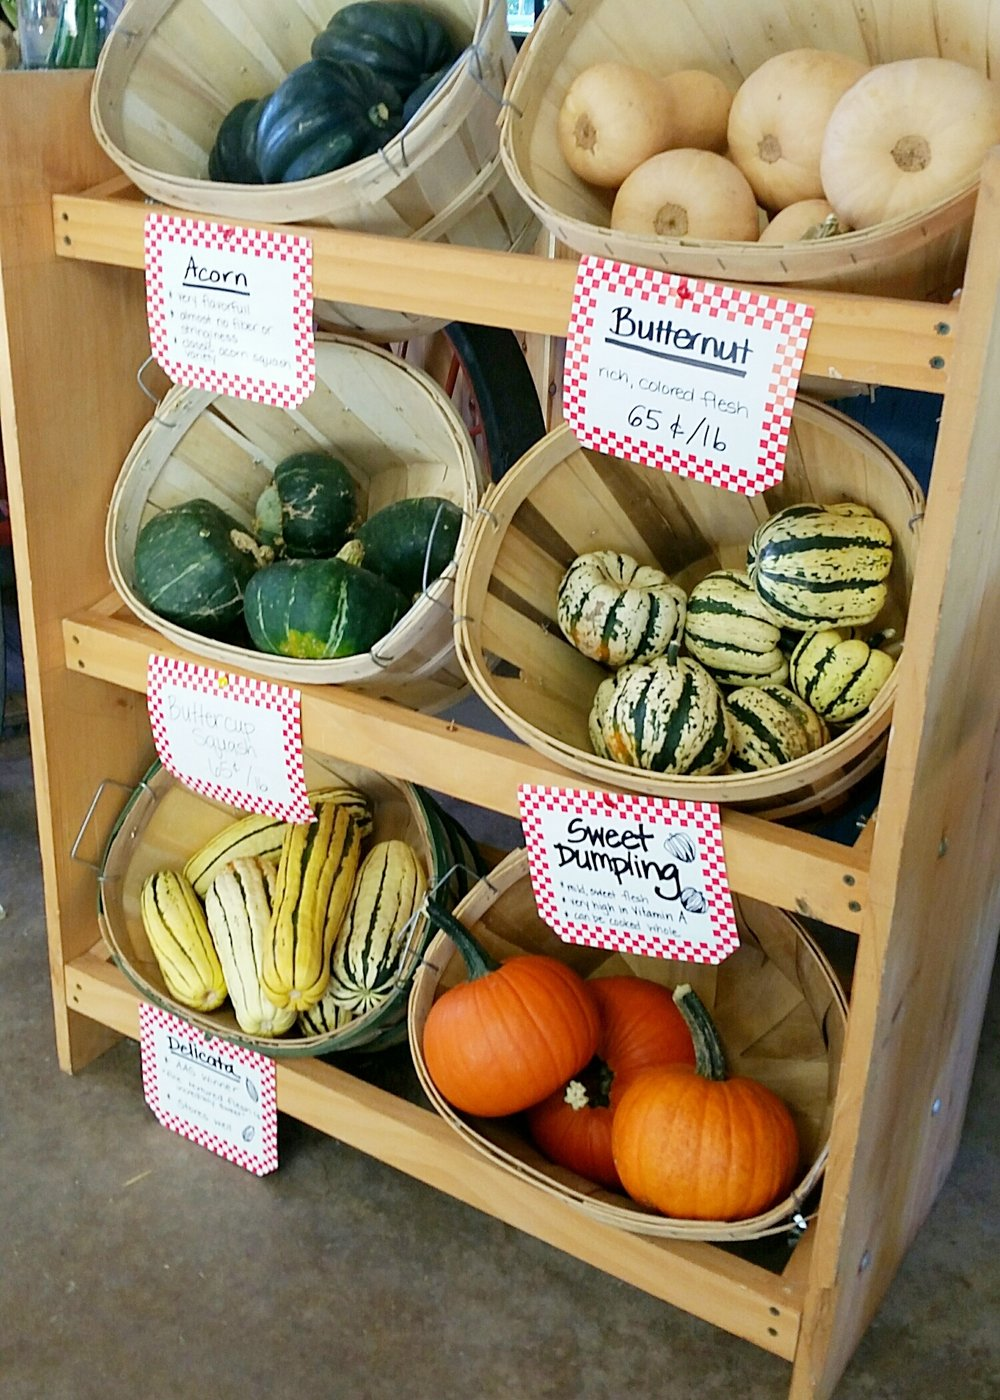 Winter Squash Varieties: Acorn, Butternut, Buttercup, Delicata, Sweet Dumpling, and Pie Pumpkins.